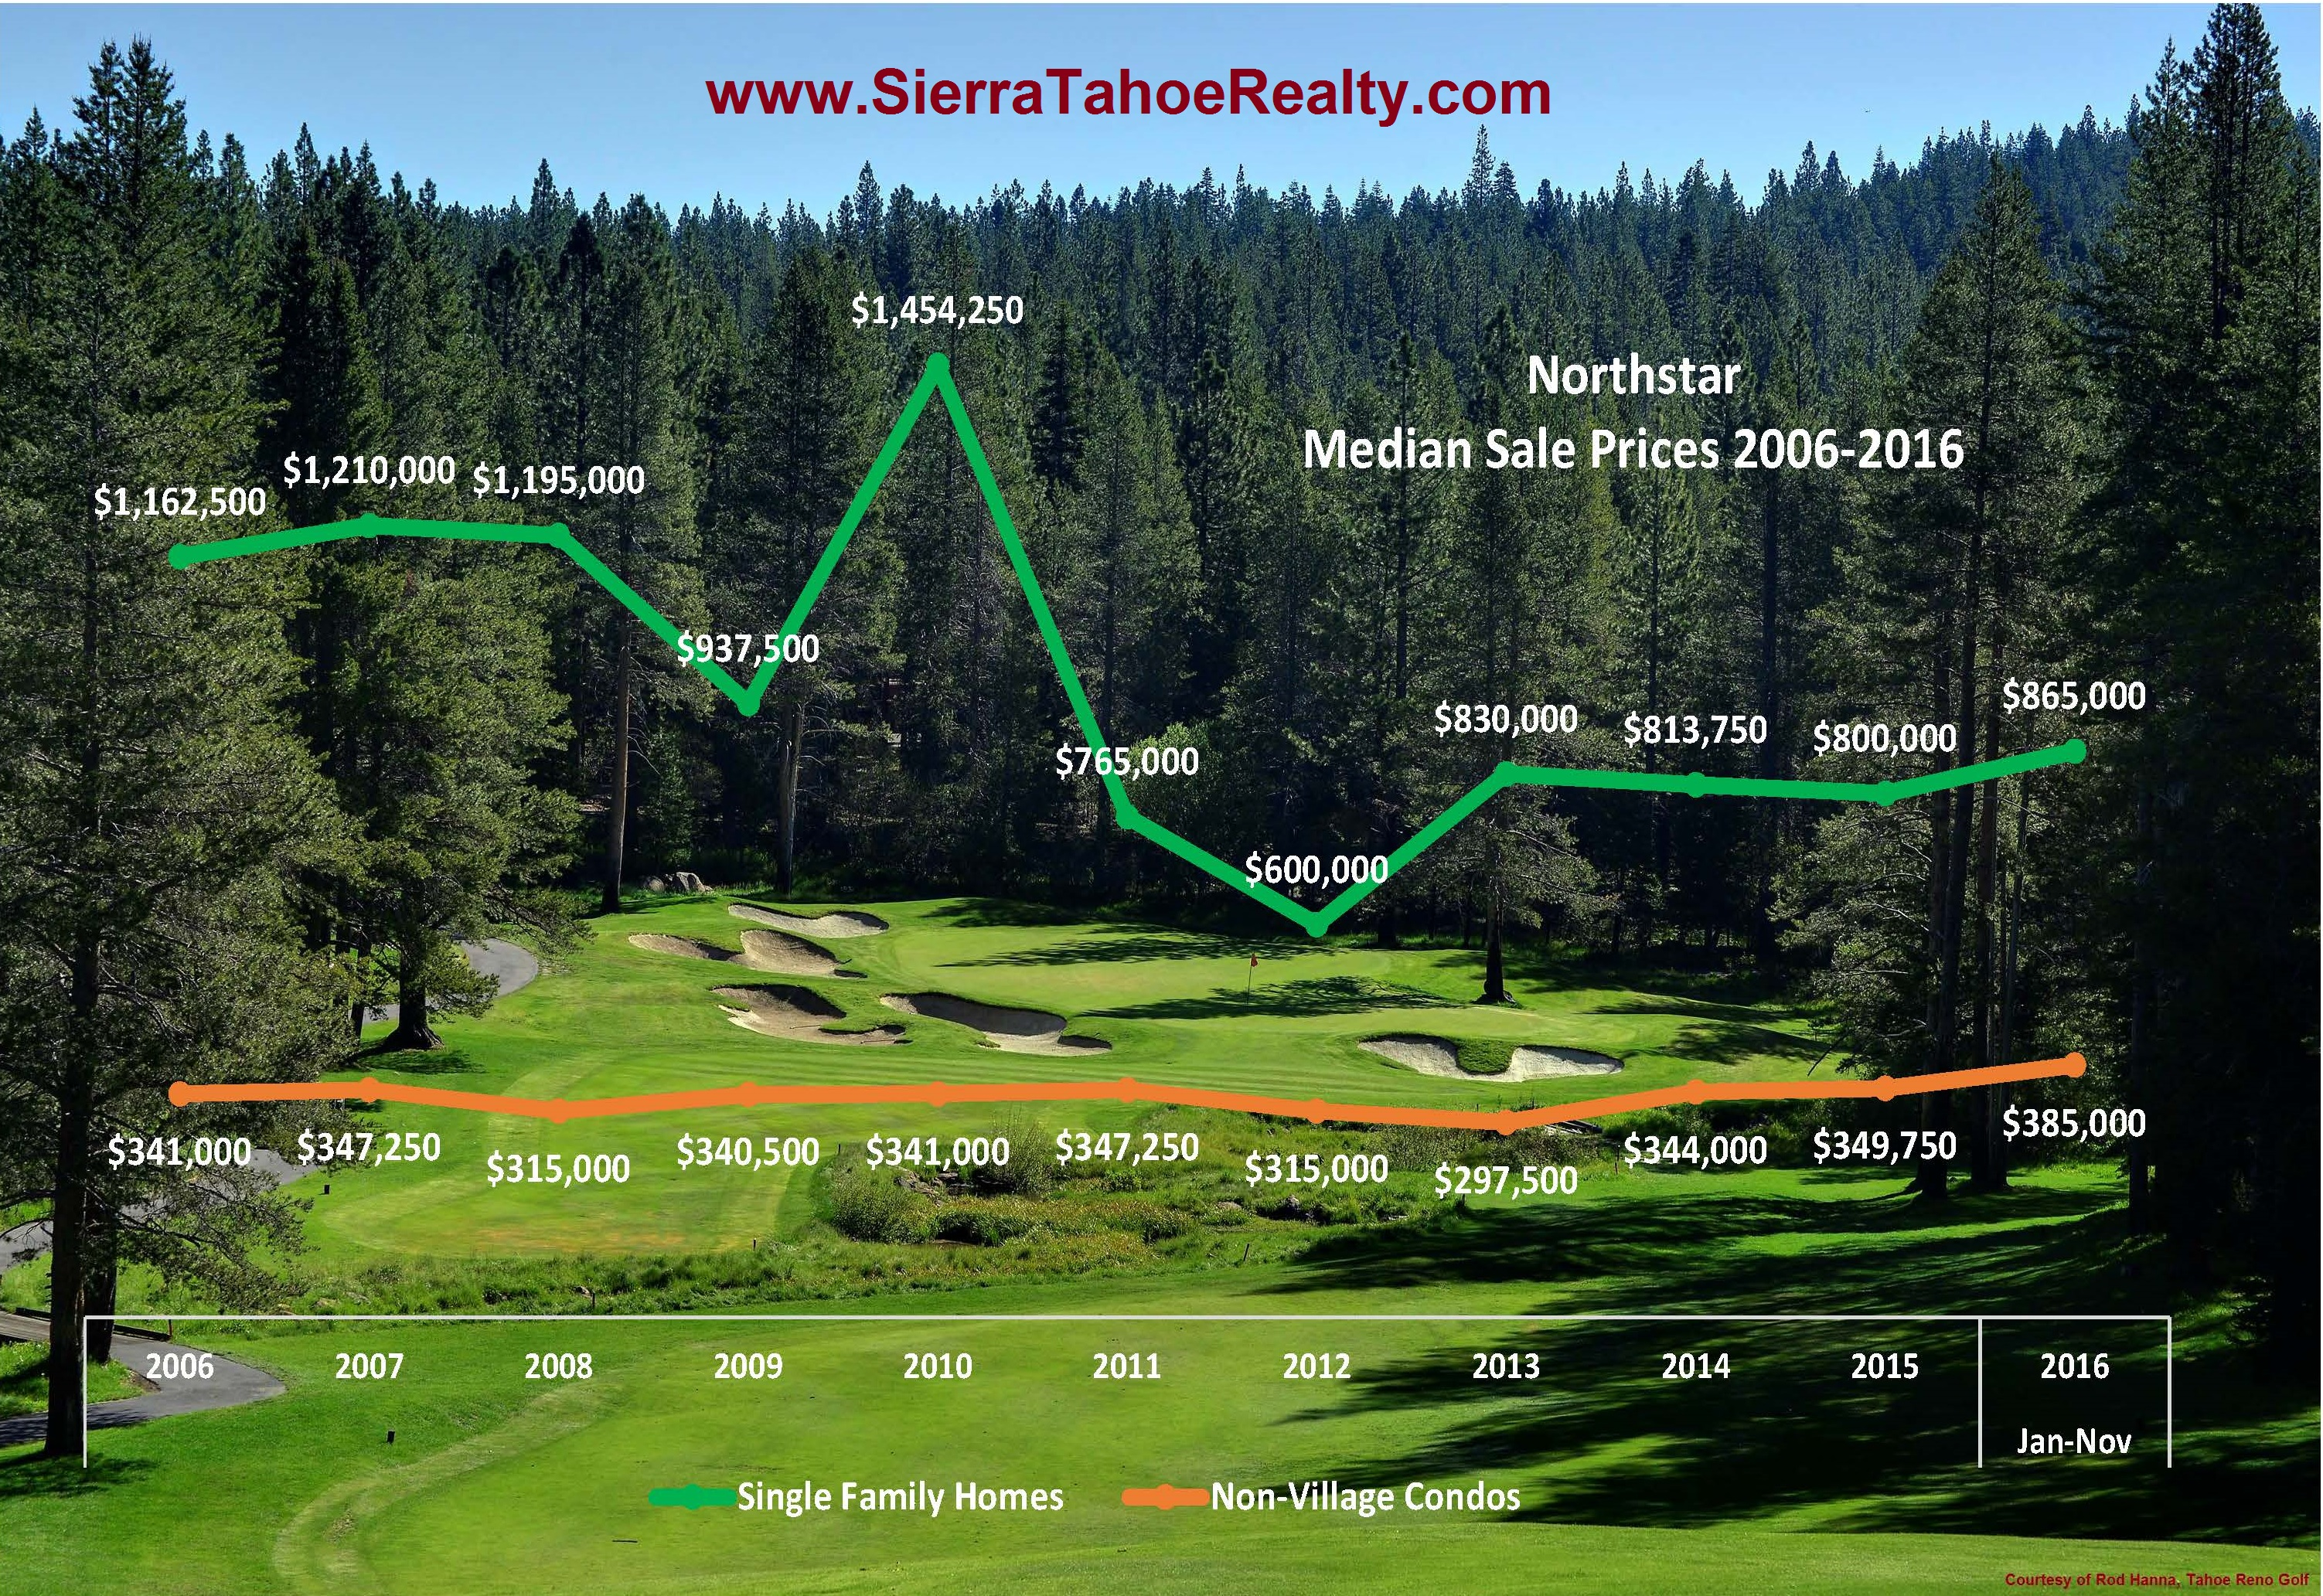 Northstar California Ski Resort Real Estate Sales Statistics / Median Sales Prices